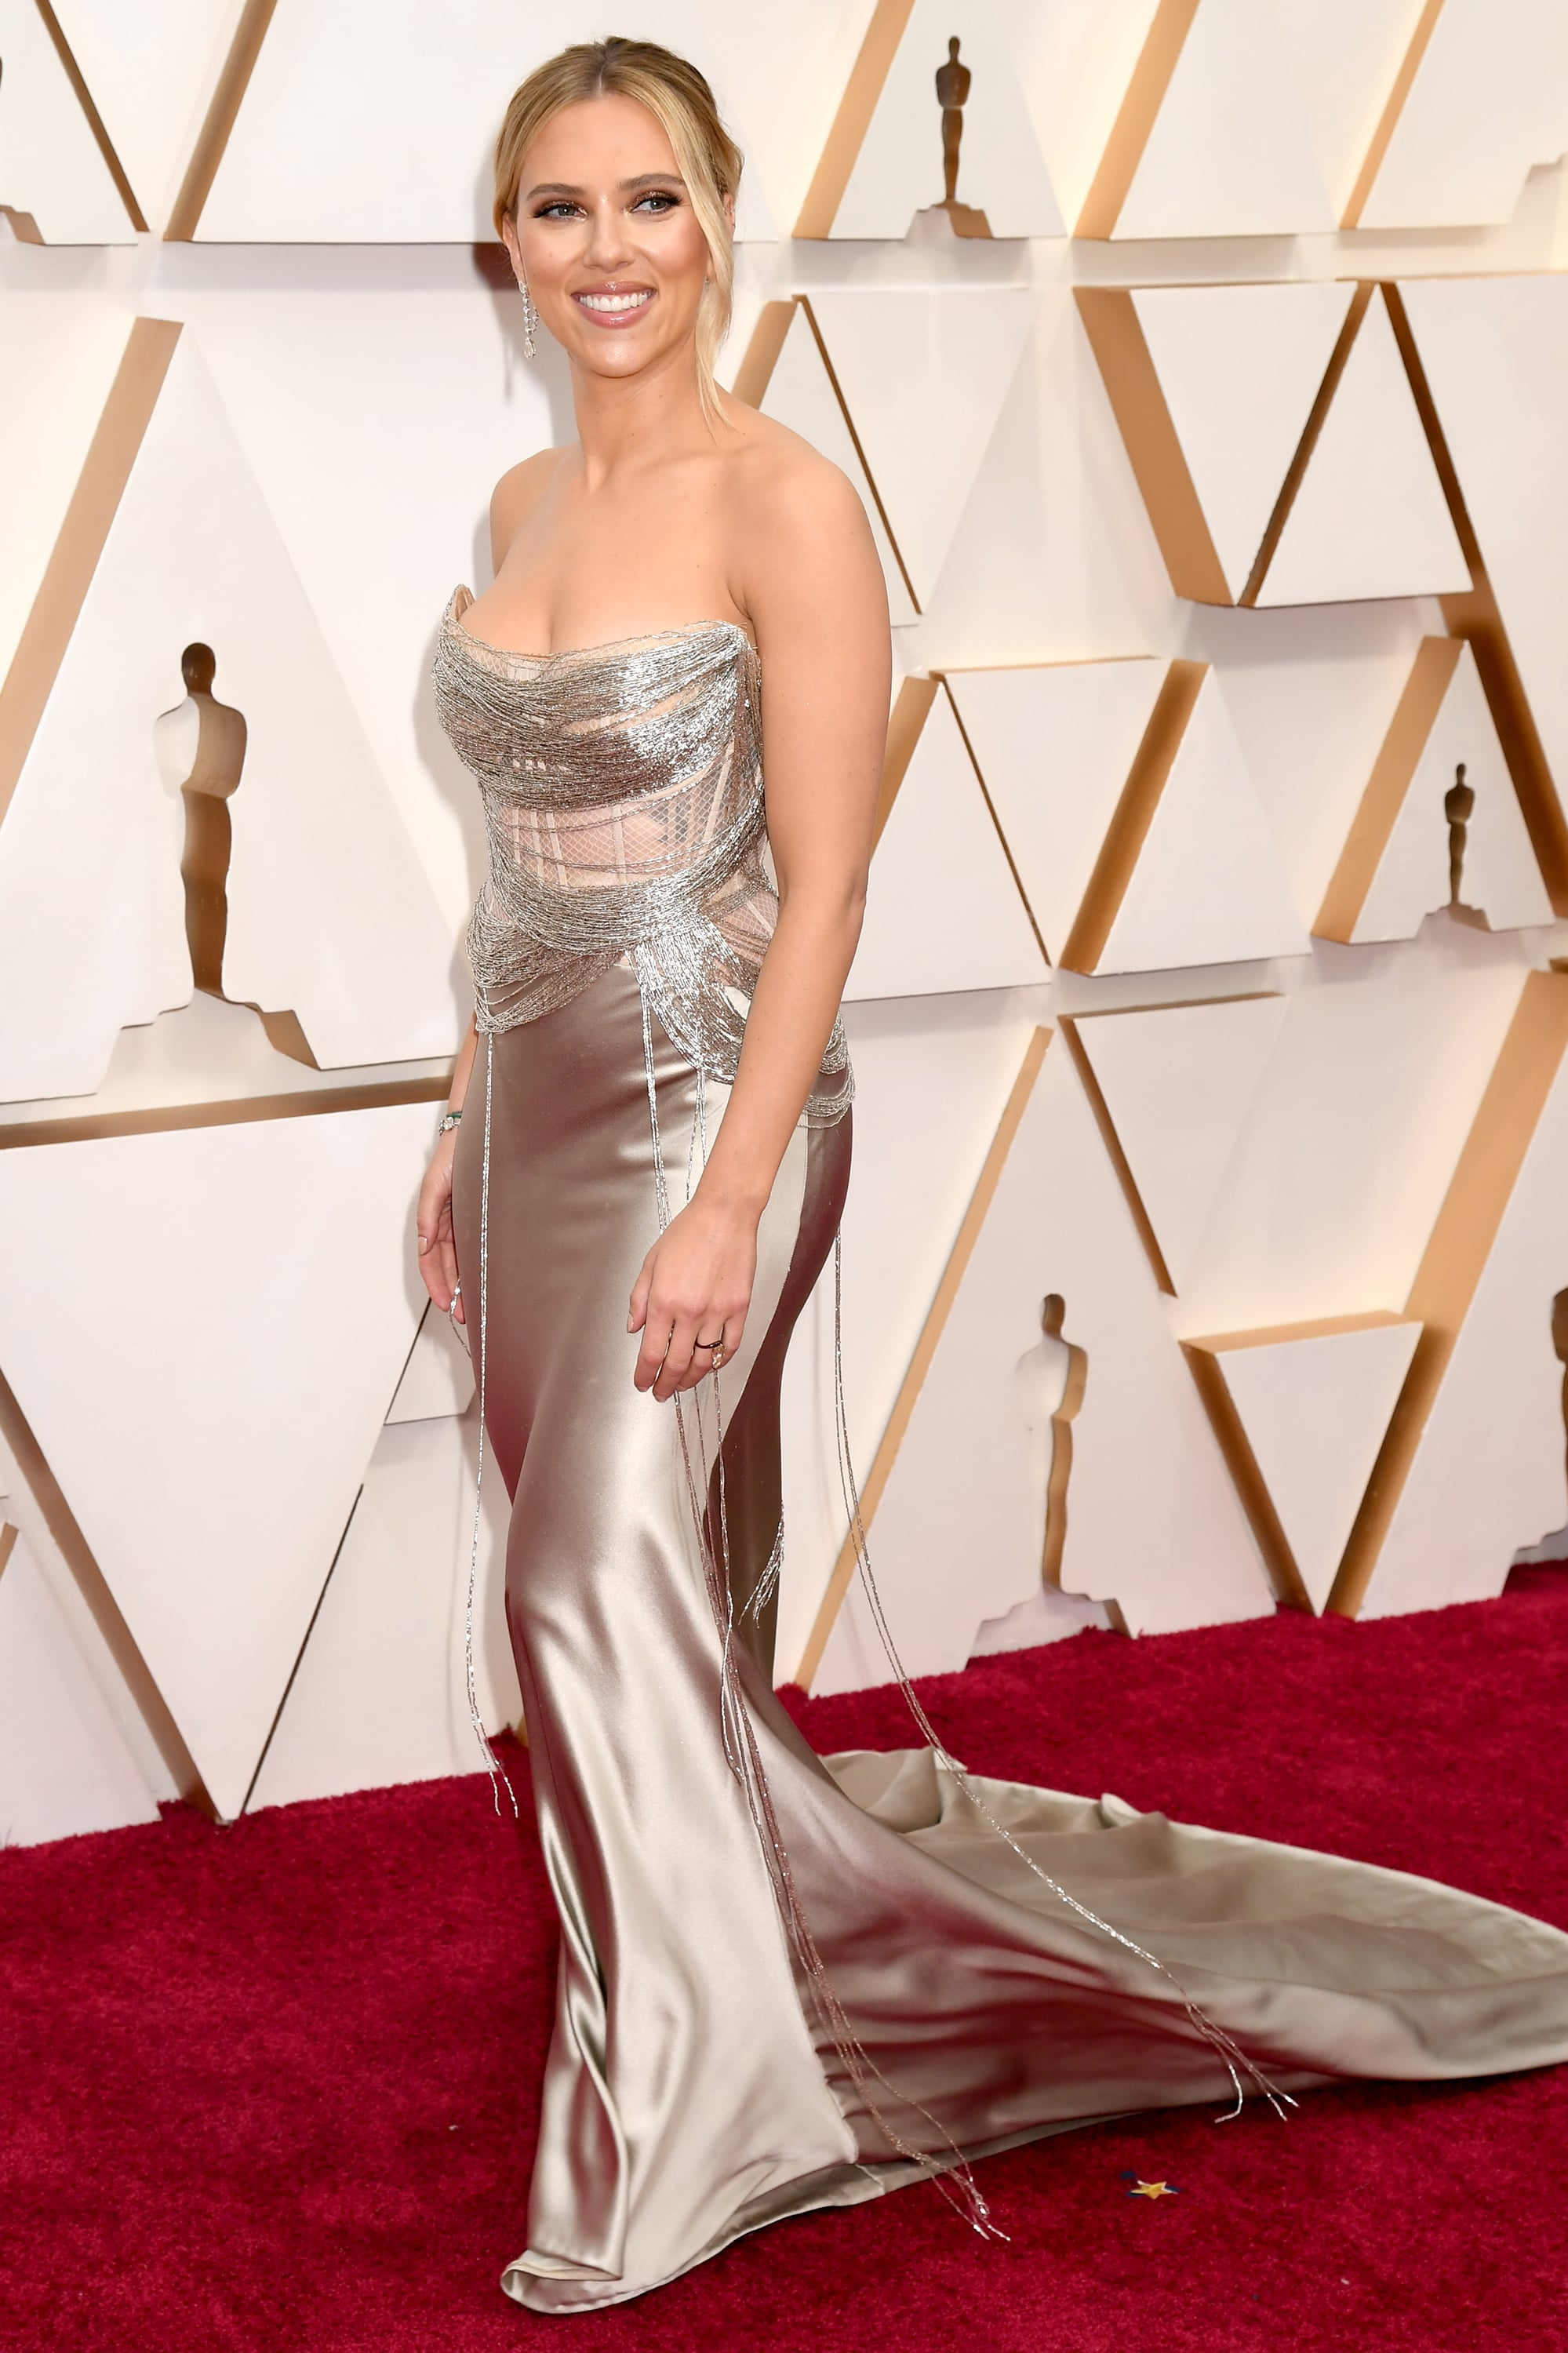 HOLLYWOOD, CALIFORNIA - FEBRUARY 09: Scarlett Johansson attends the 92nd Annual Academy Awards at Hollywood and Highland on February 09, 2020 in Hollywood, California.